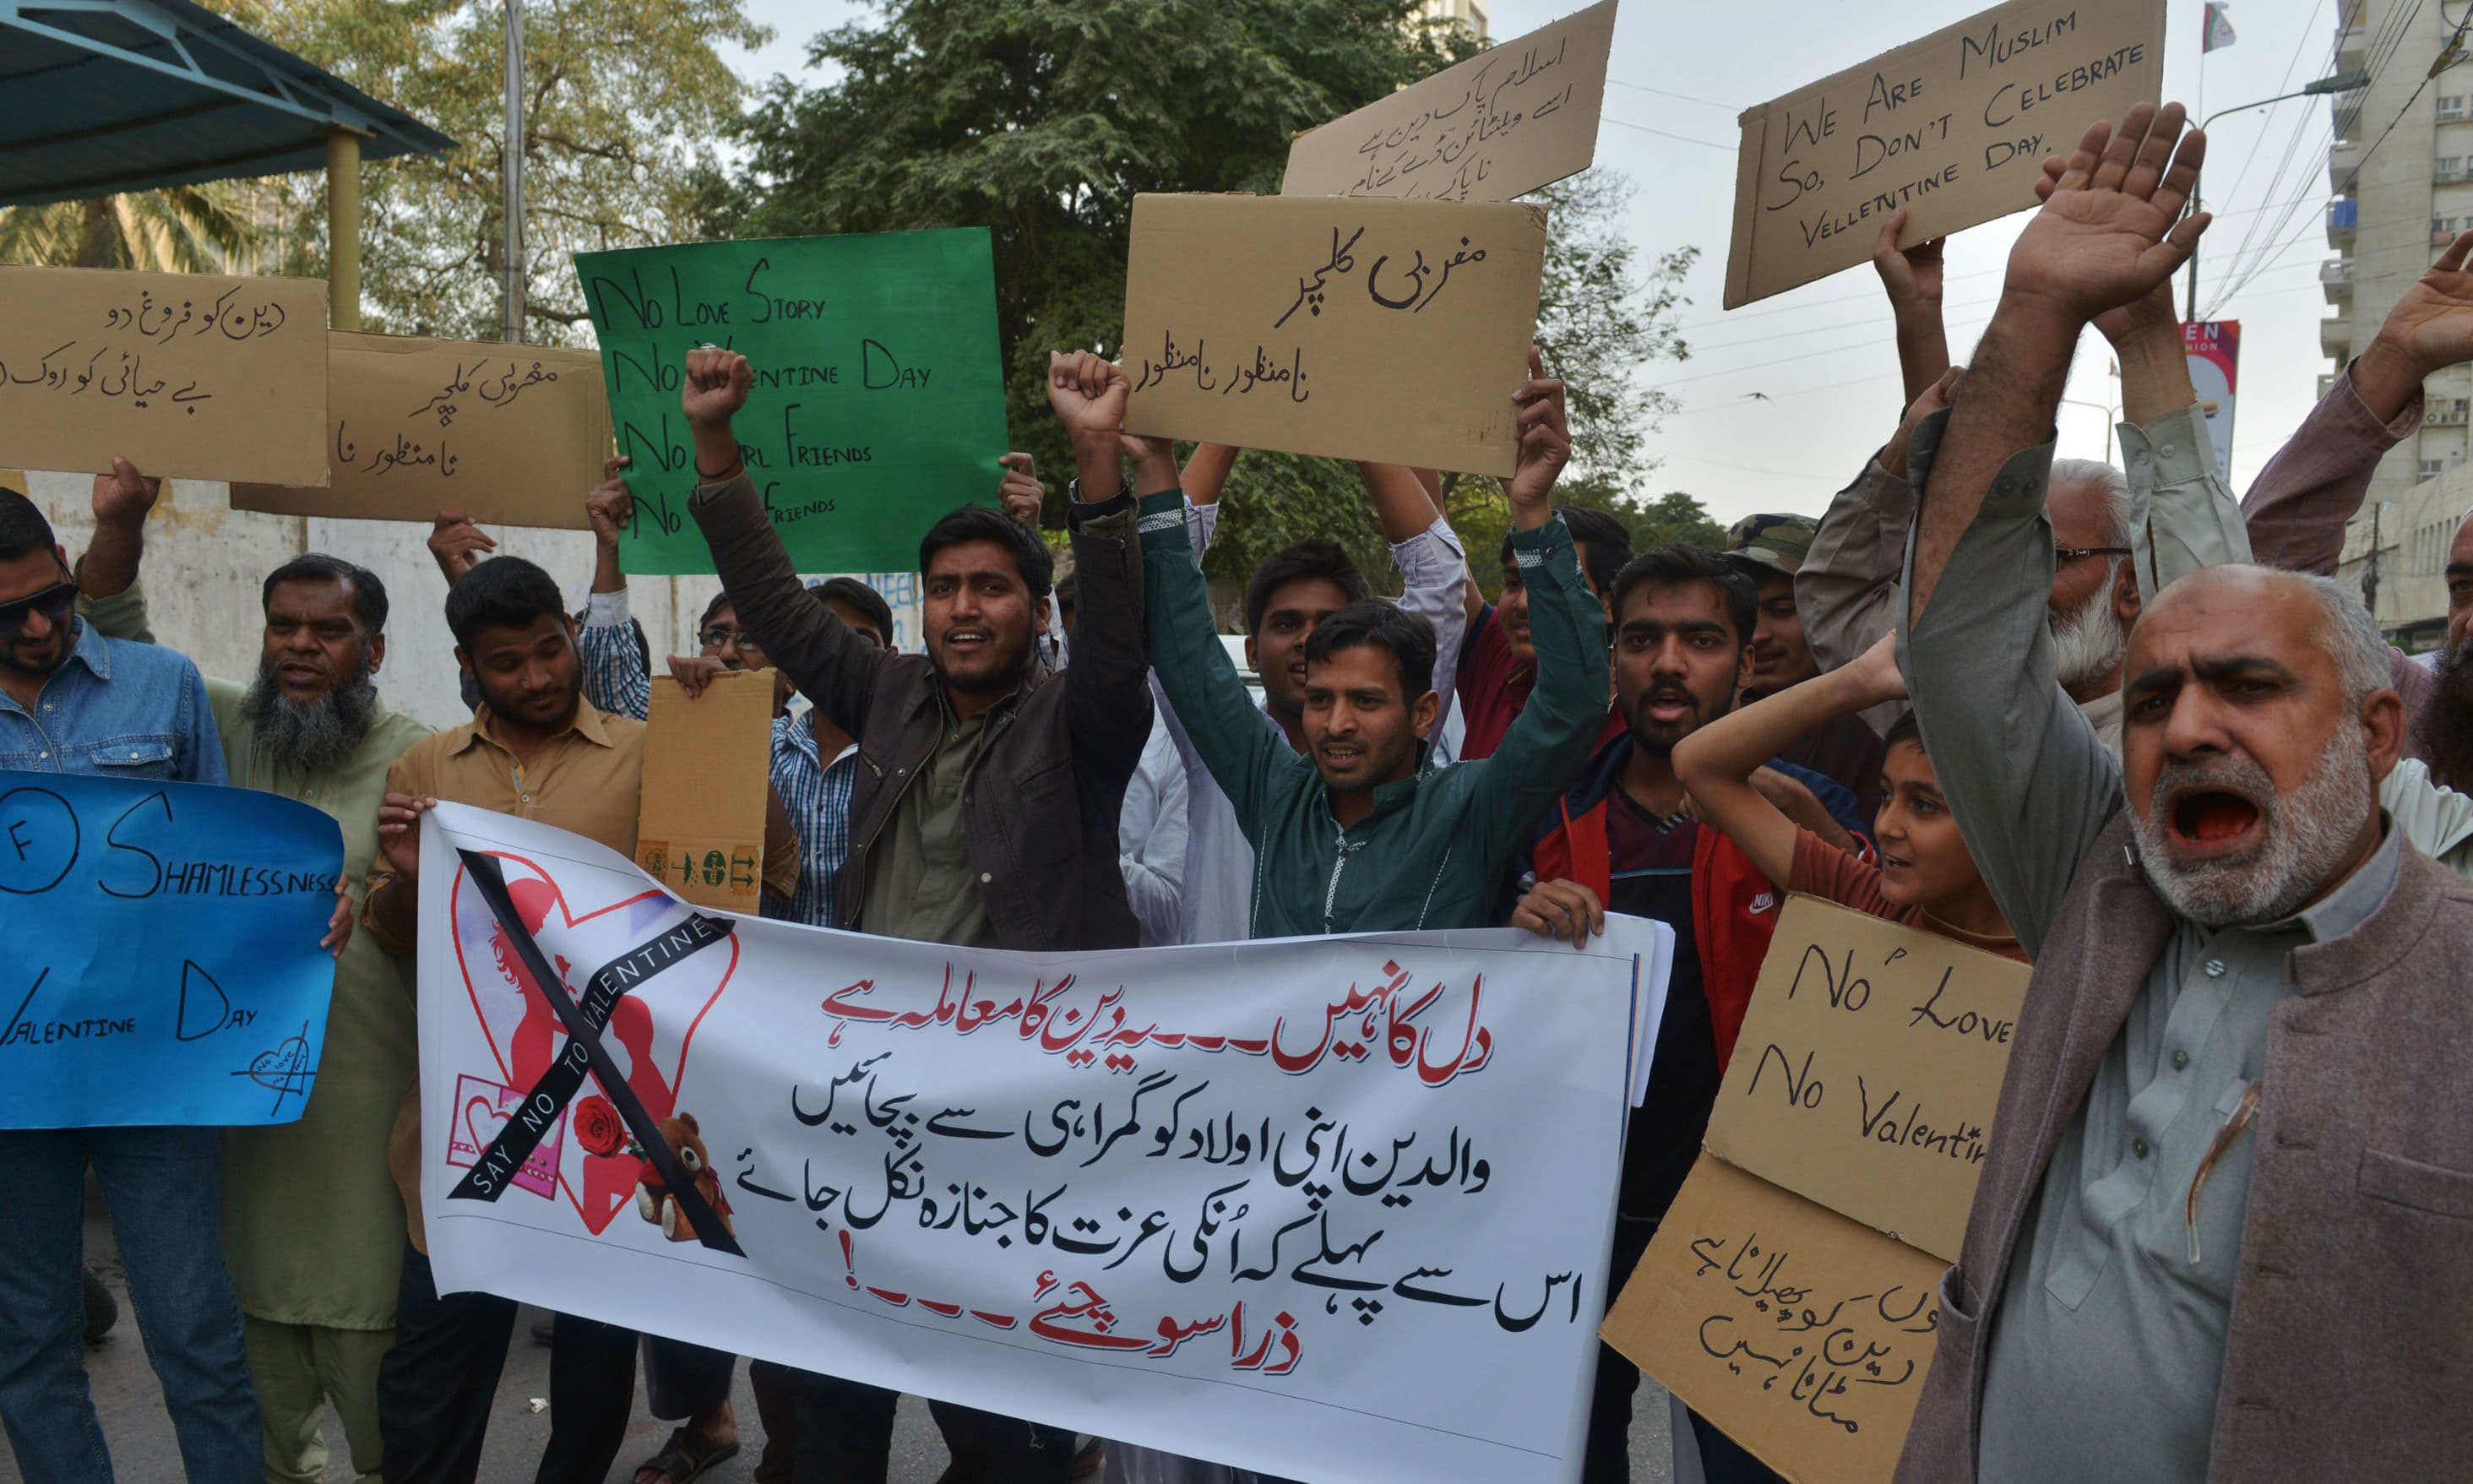 Demonstrators hold posters as they take part in a protest against Valentine's Day in Karachi. —AFP